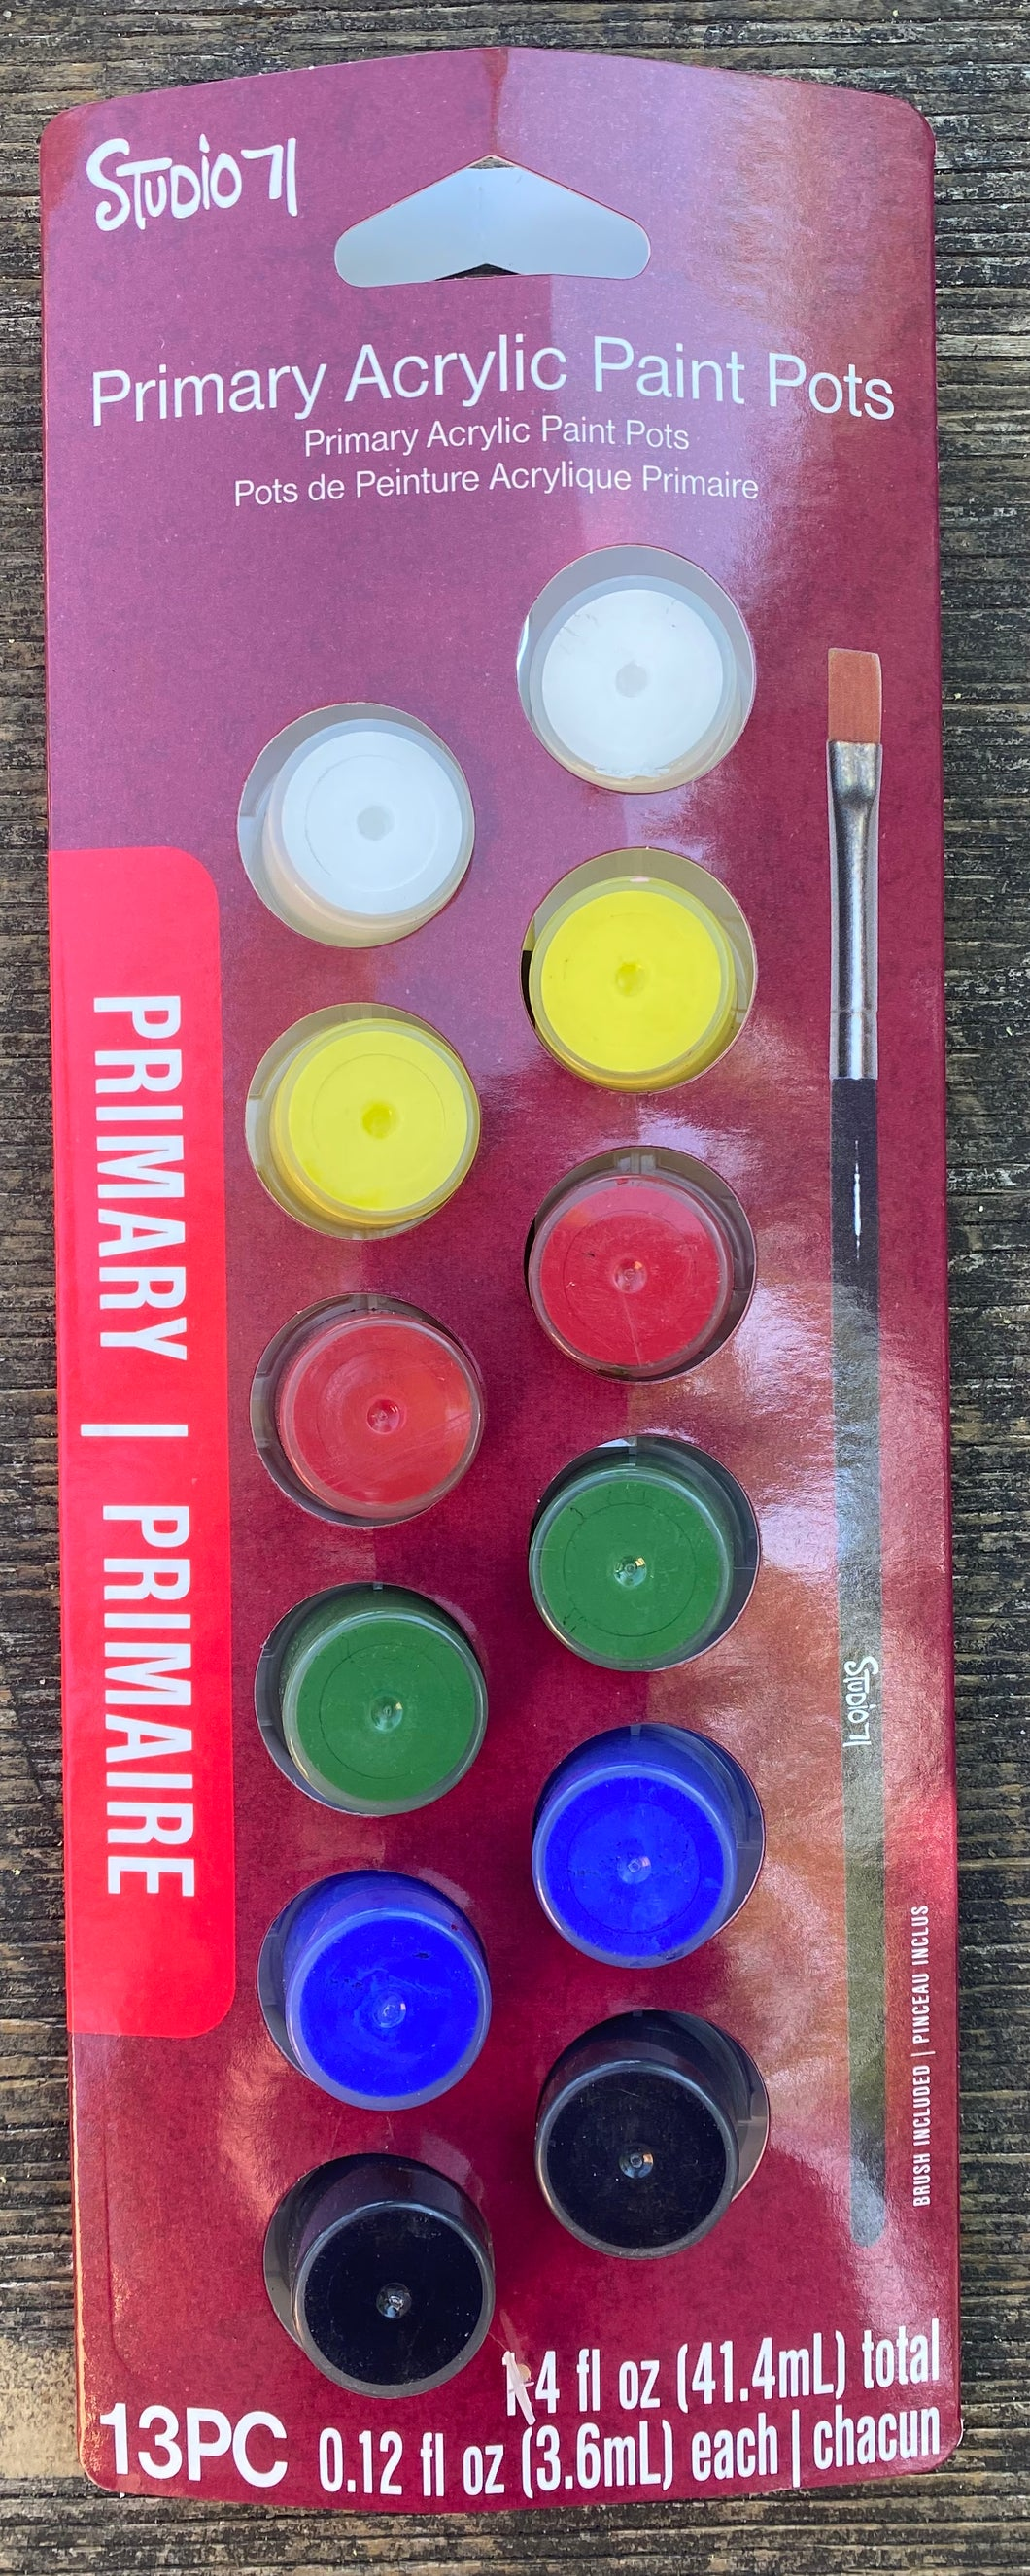 Primary Acrylic Paint Pots